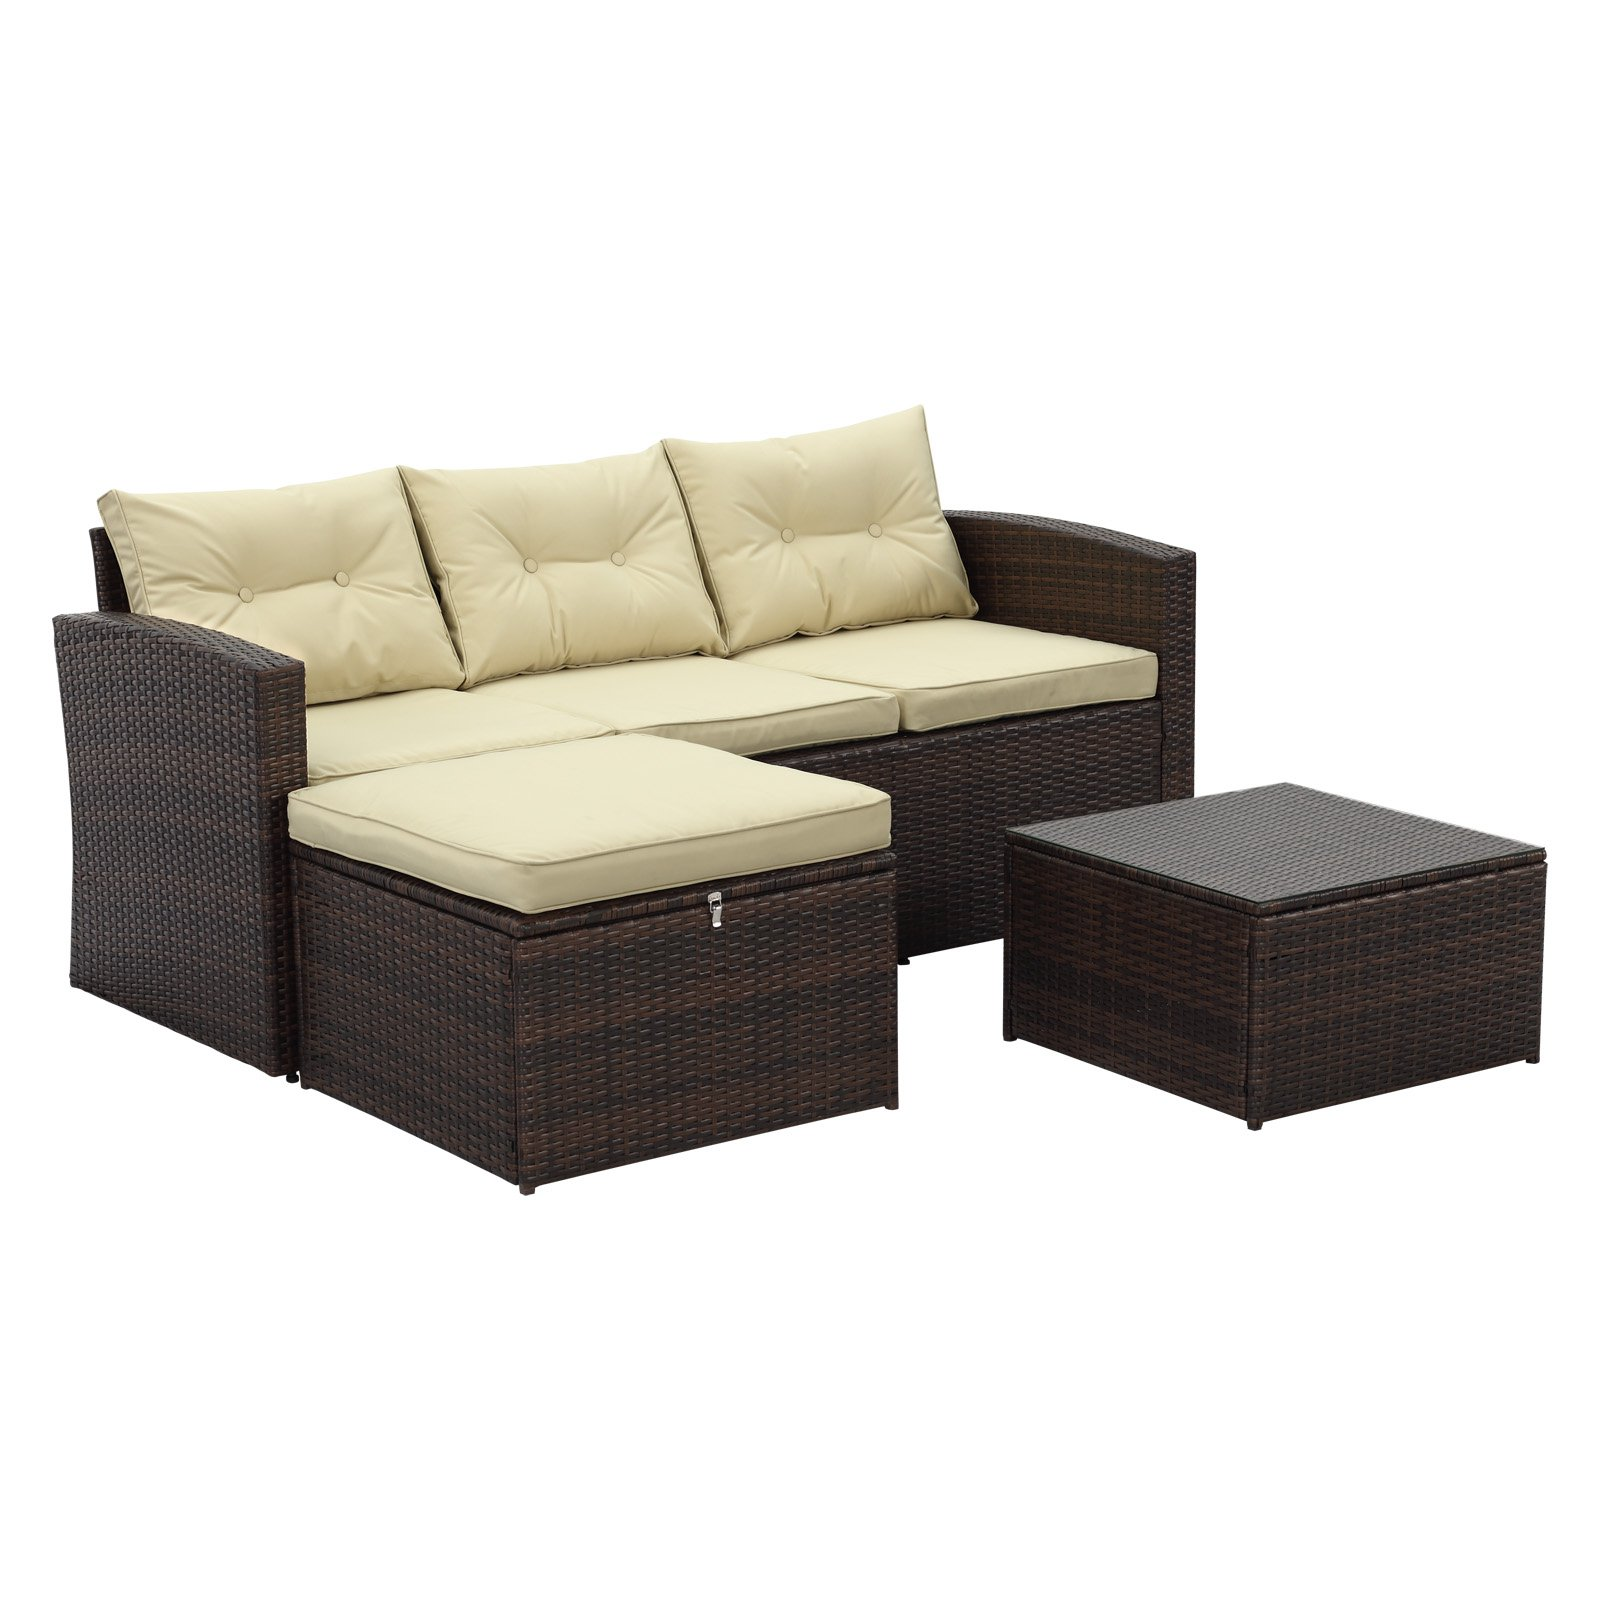 Fabulous Outdoor Incadozo Rio Wicker All Weather 3 Piece Patio Pdpeps Interior Chair Design Pdpepsorg